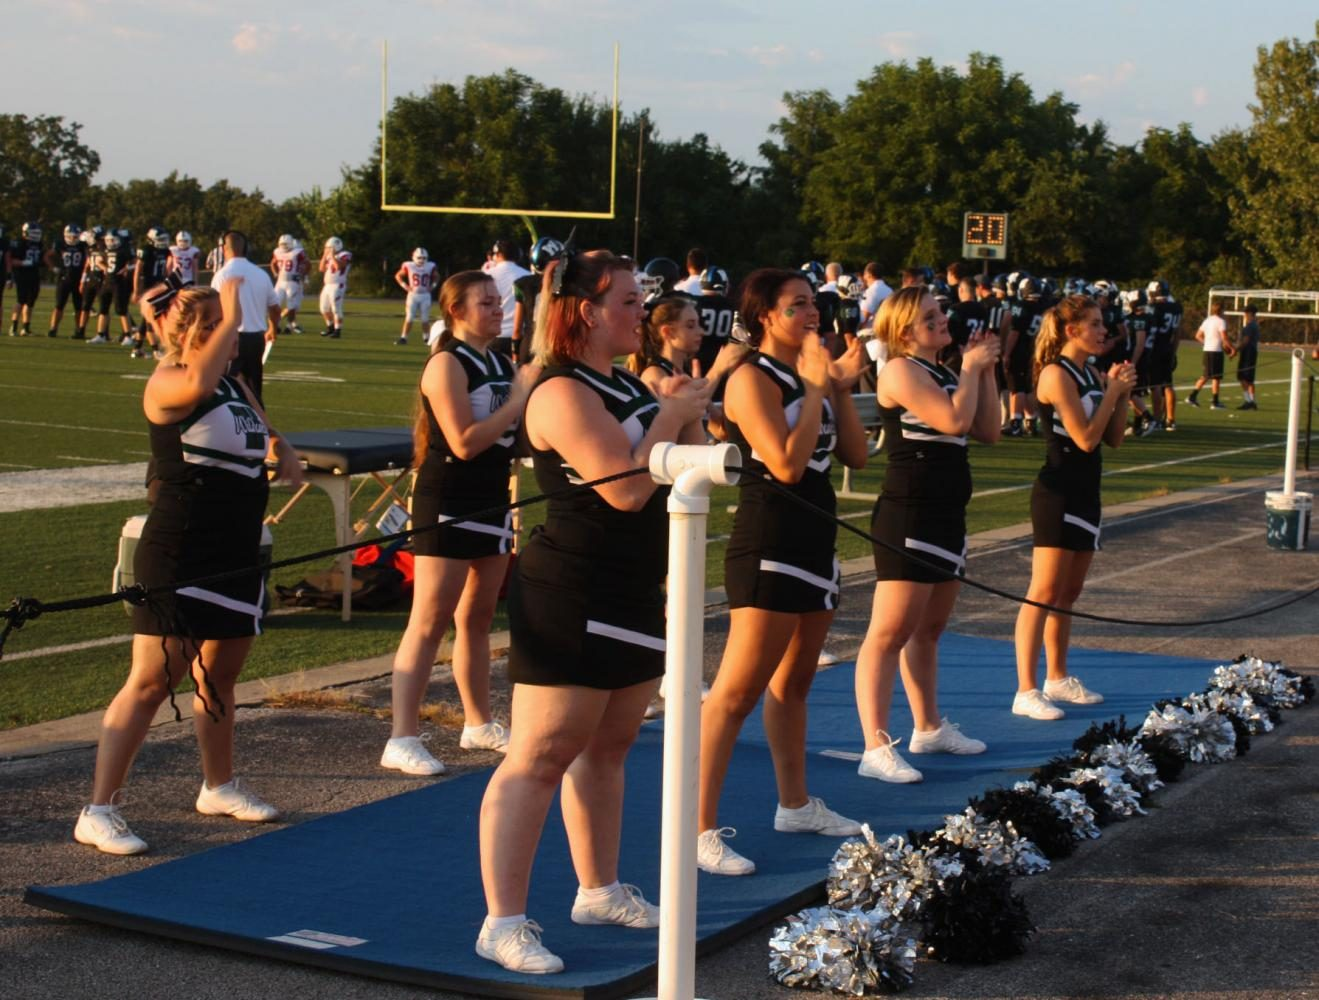 The cheerleaders rally the crowd for the win against Clinton. The final score was 14-12.